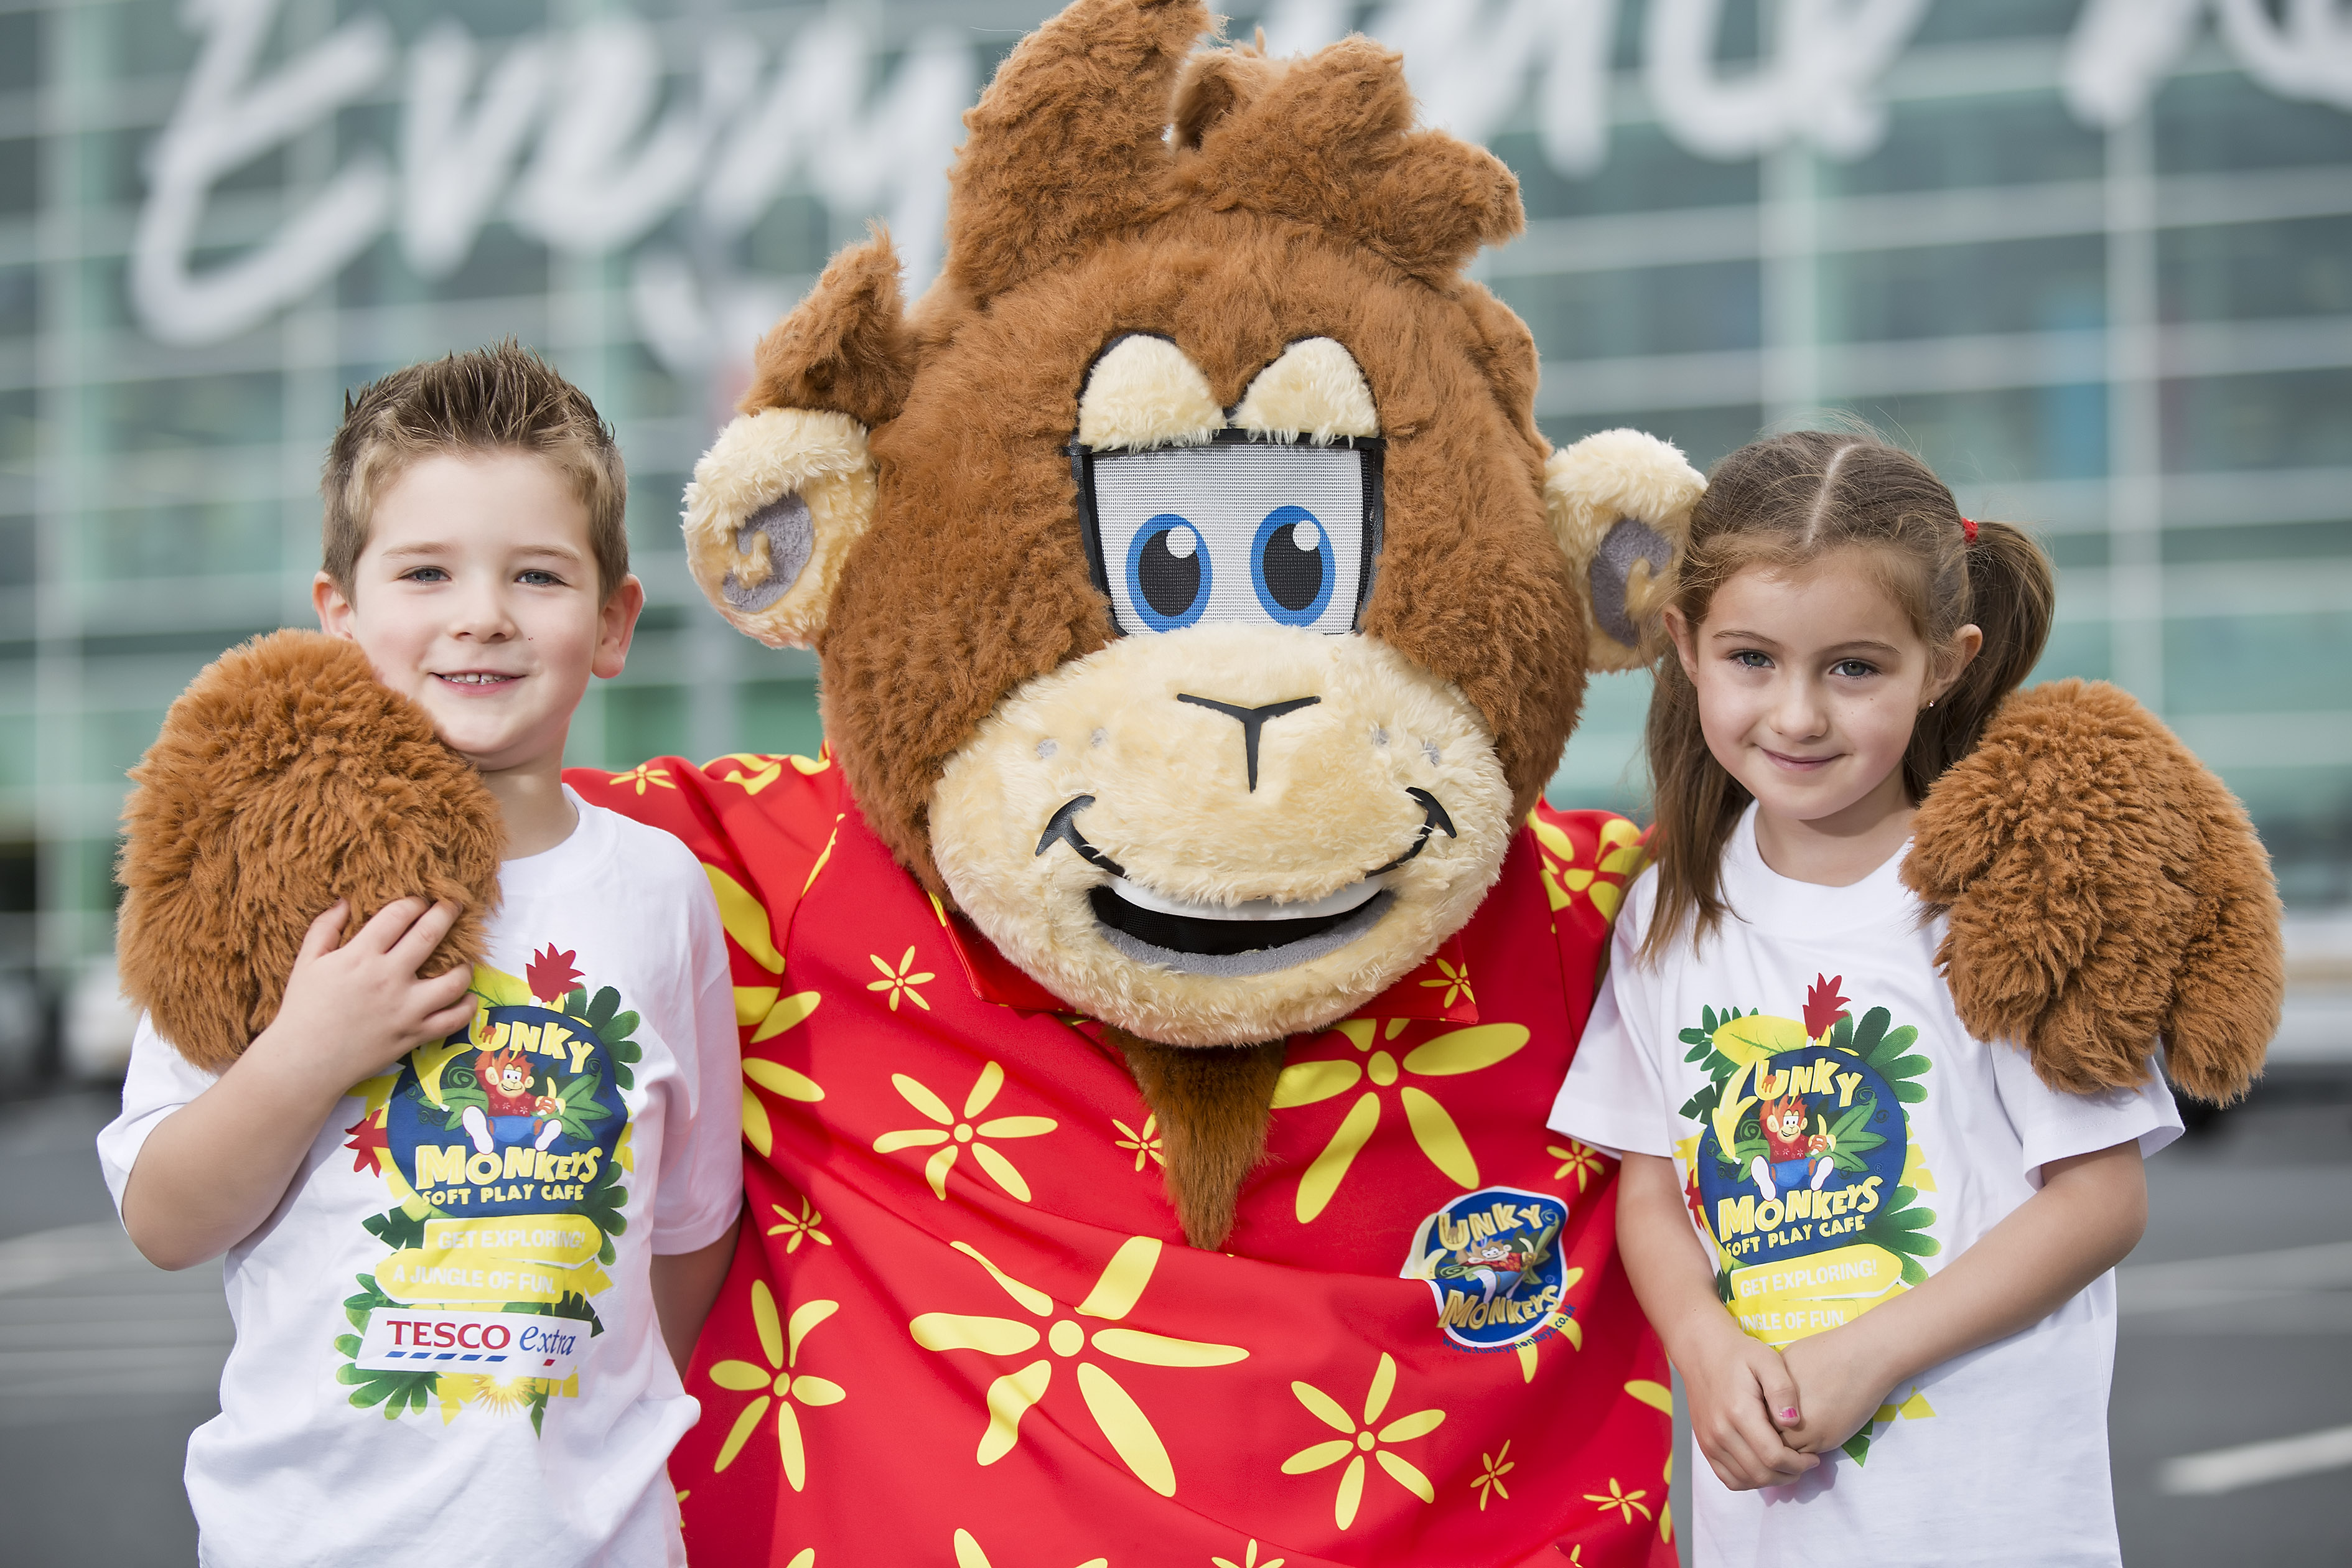 Funky Monkeys expands their jungle kingdom with Tesco!